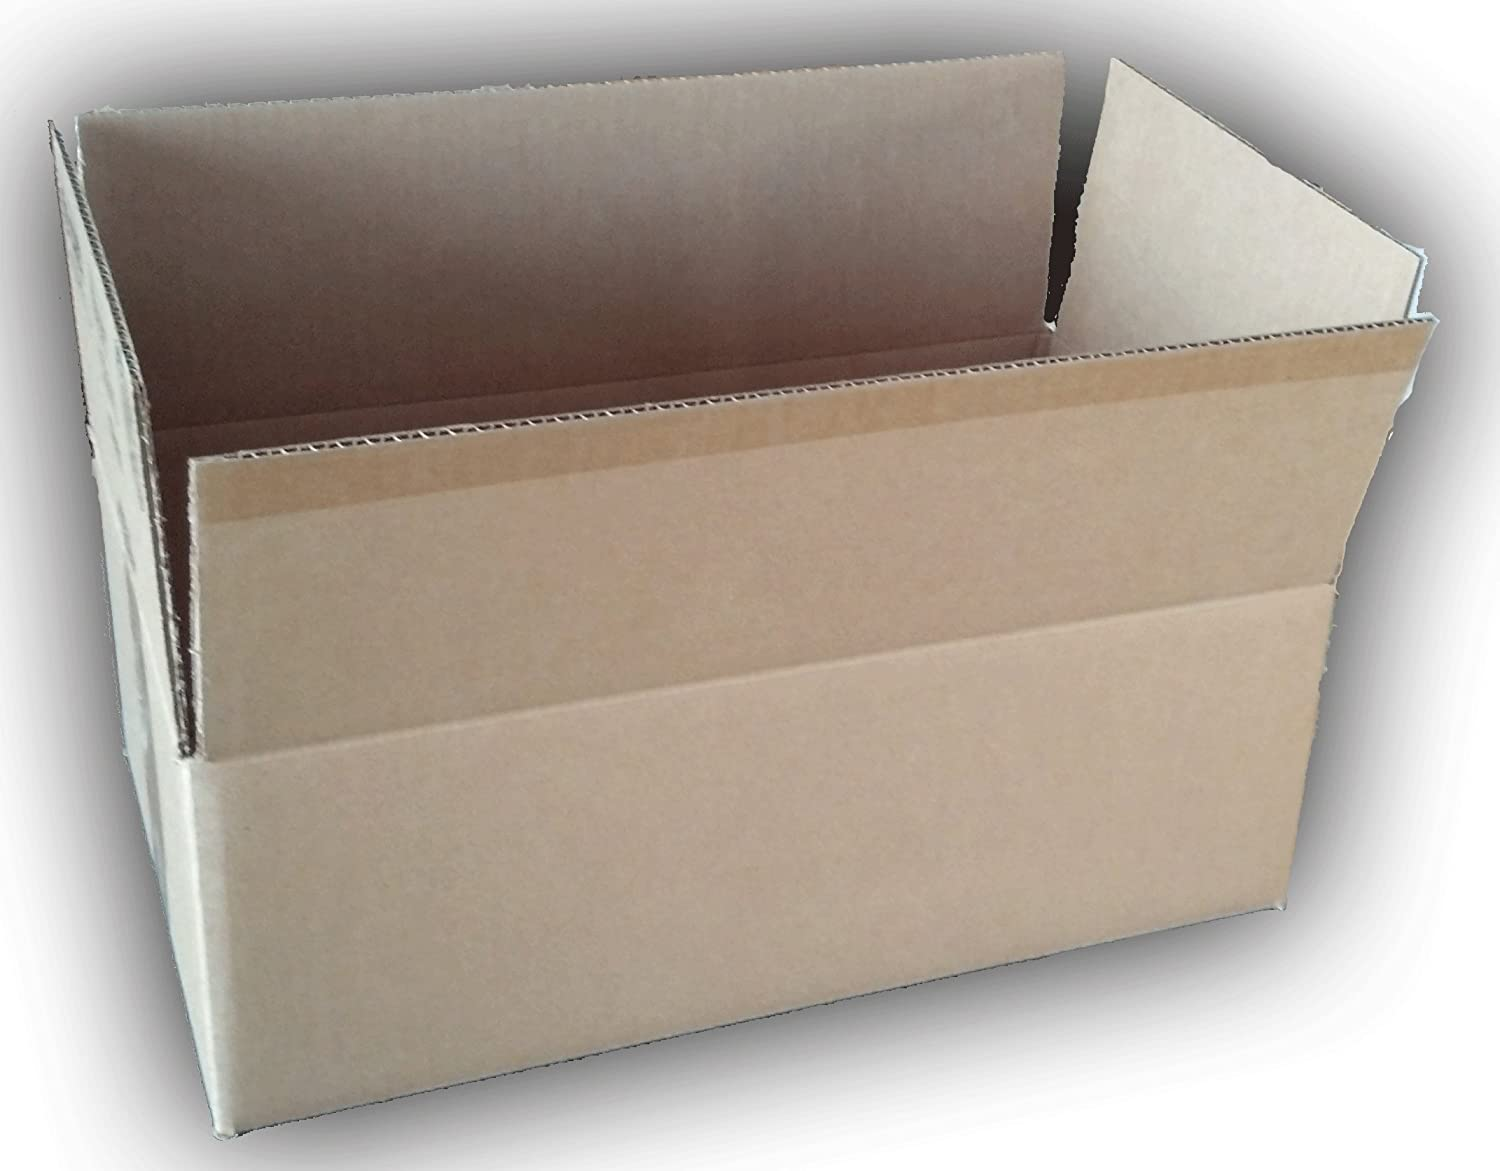 Amazon.com : International Paper Corrugate Shipping Boxes, 16.69 X 10.13 X  5.5, Brown, 24 Pack : Box Mailers : Office Products